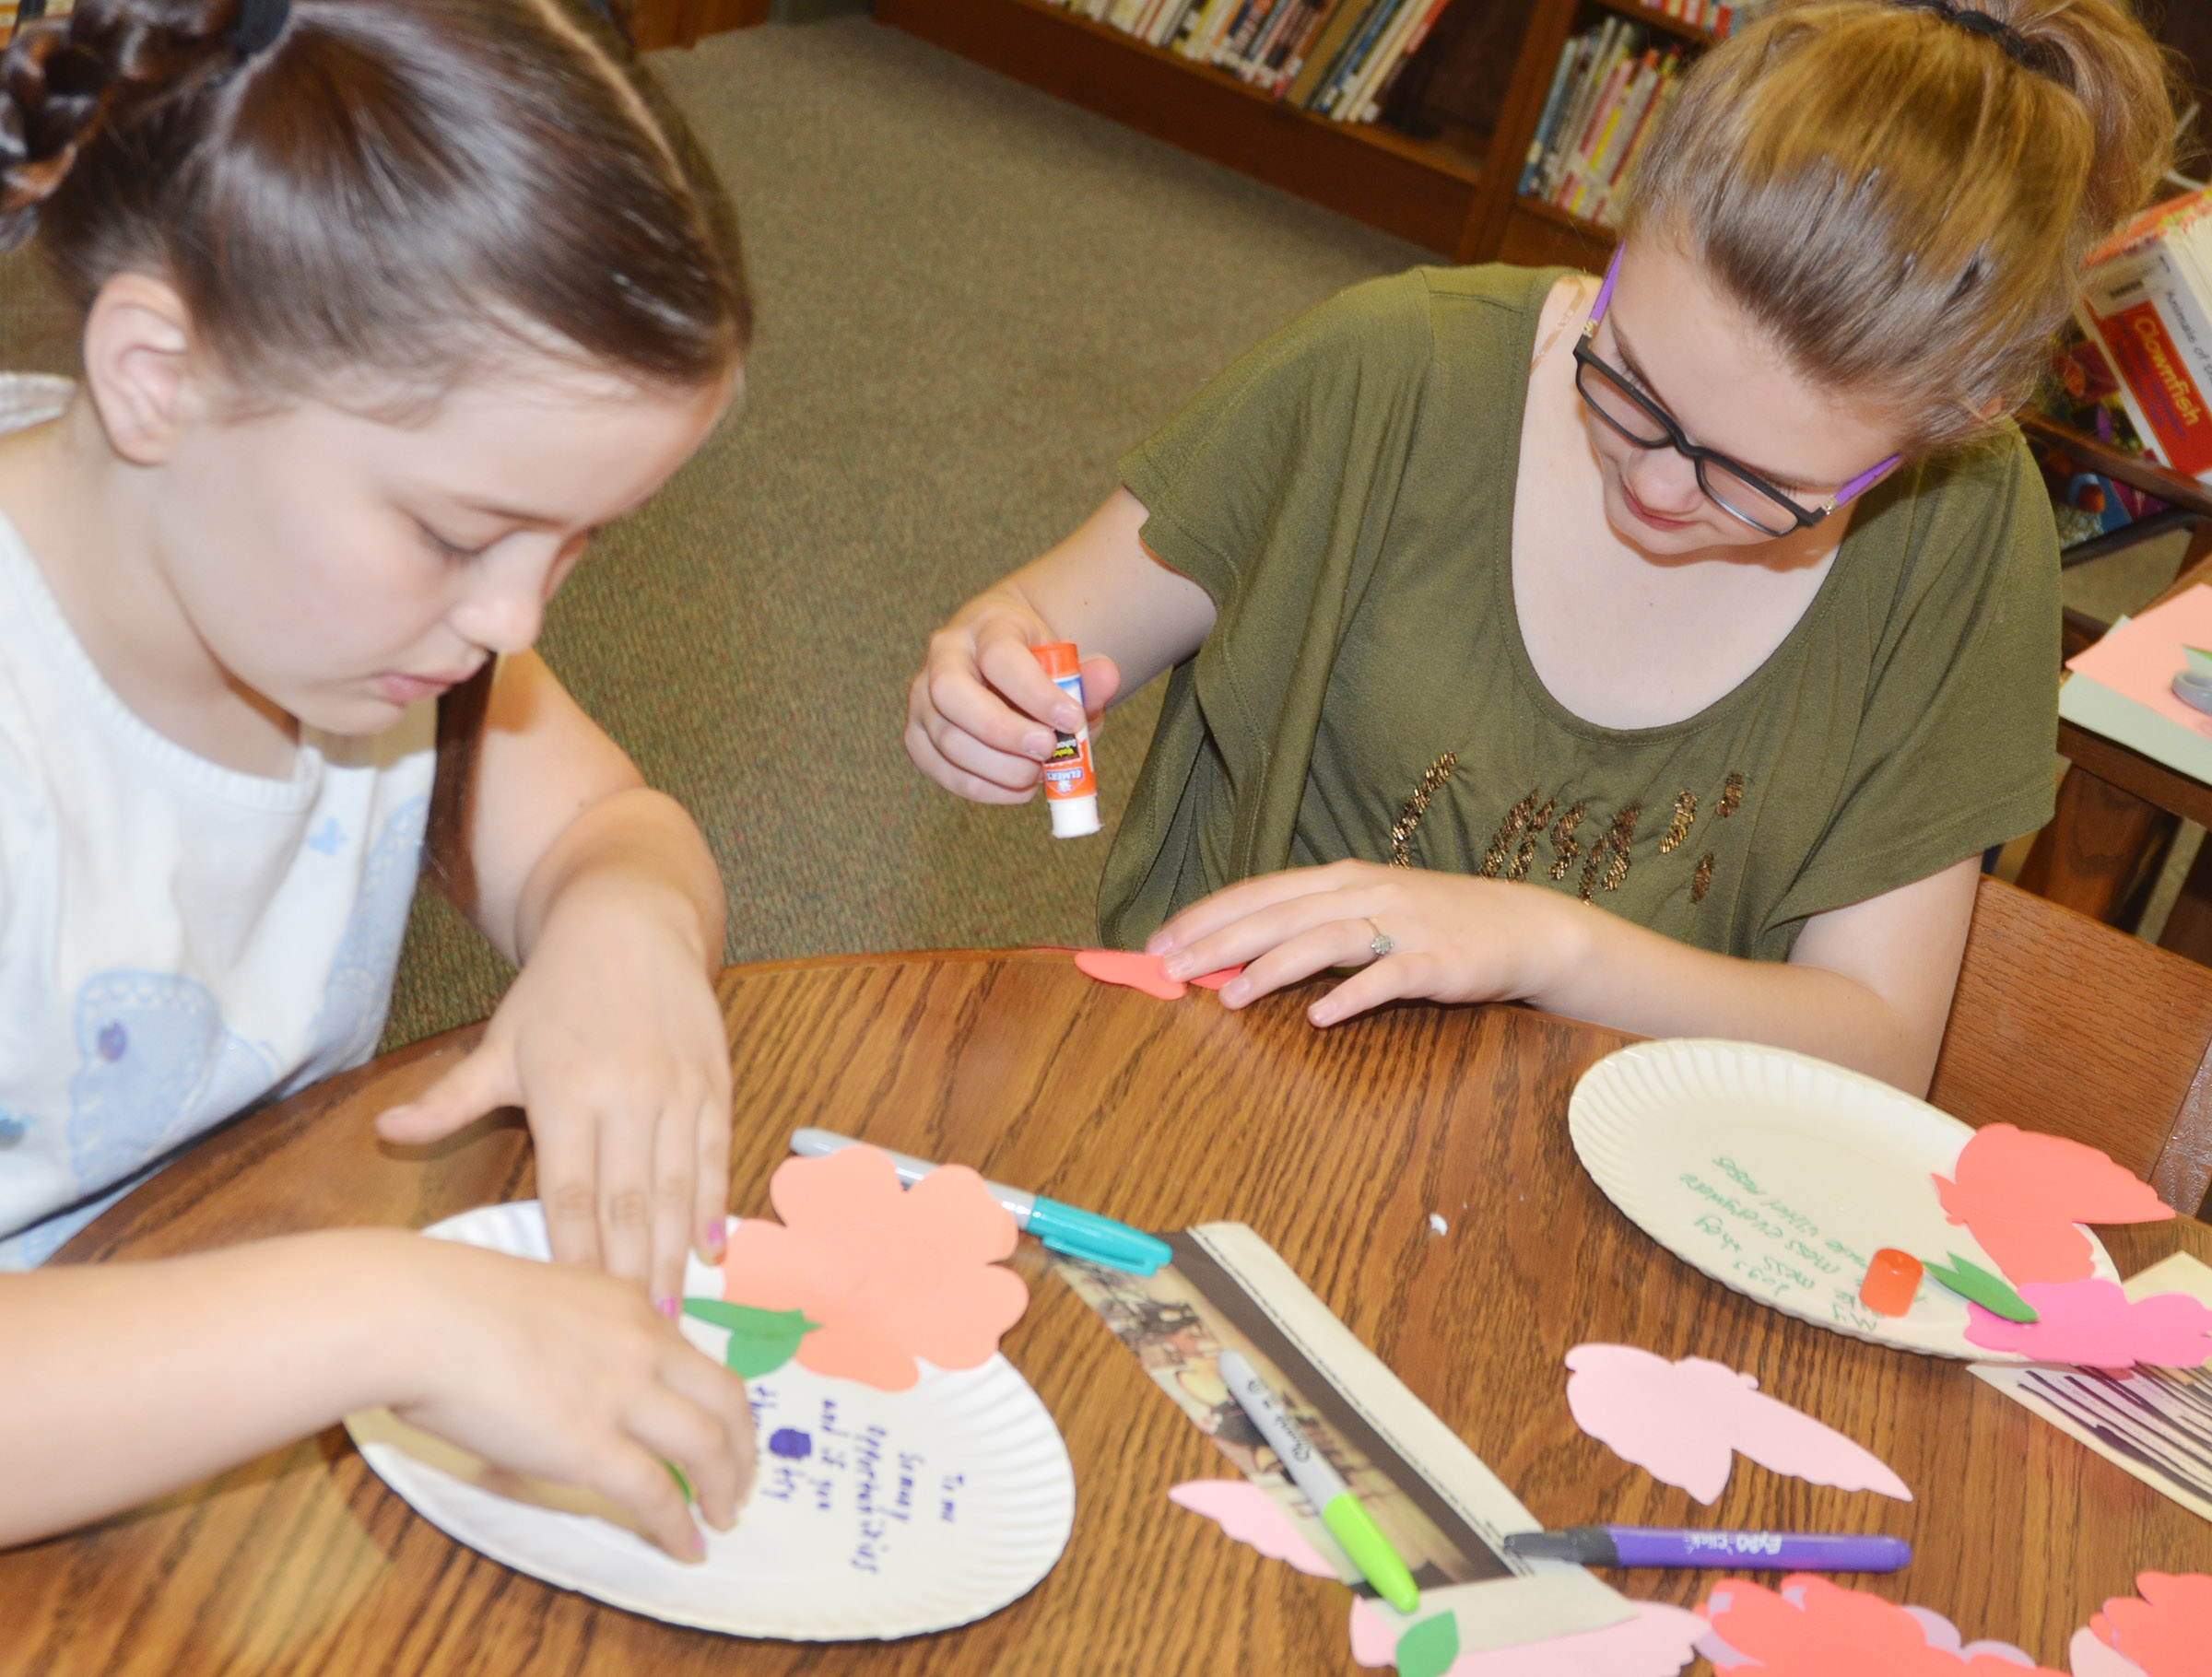 CMS fourth-graders Kate Billeter, at left, and Autumn Jones decorate the paper plates on which they wrote their poems.